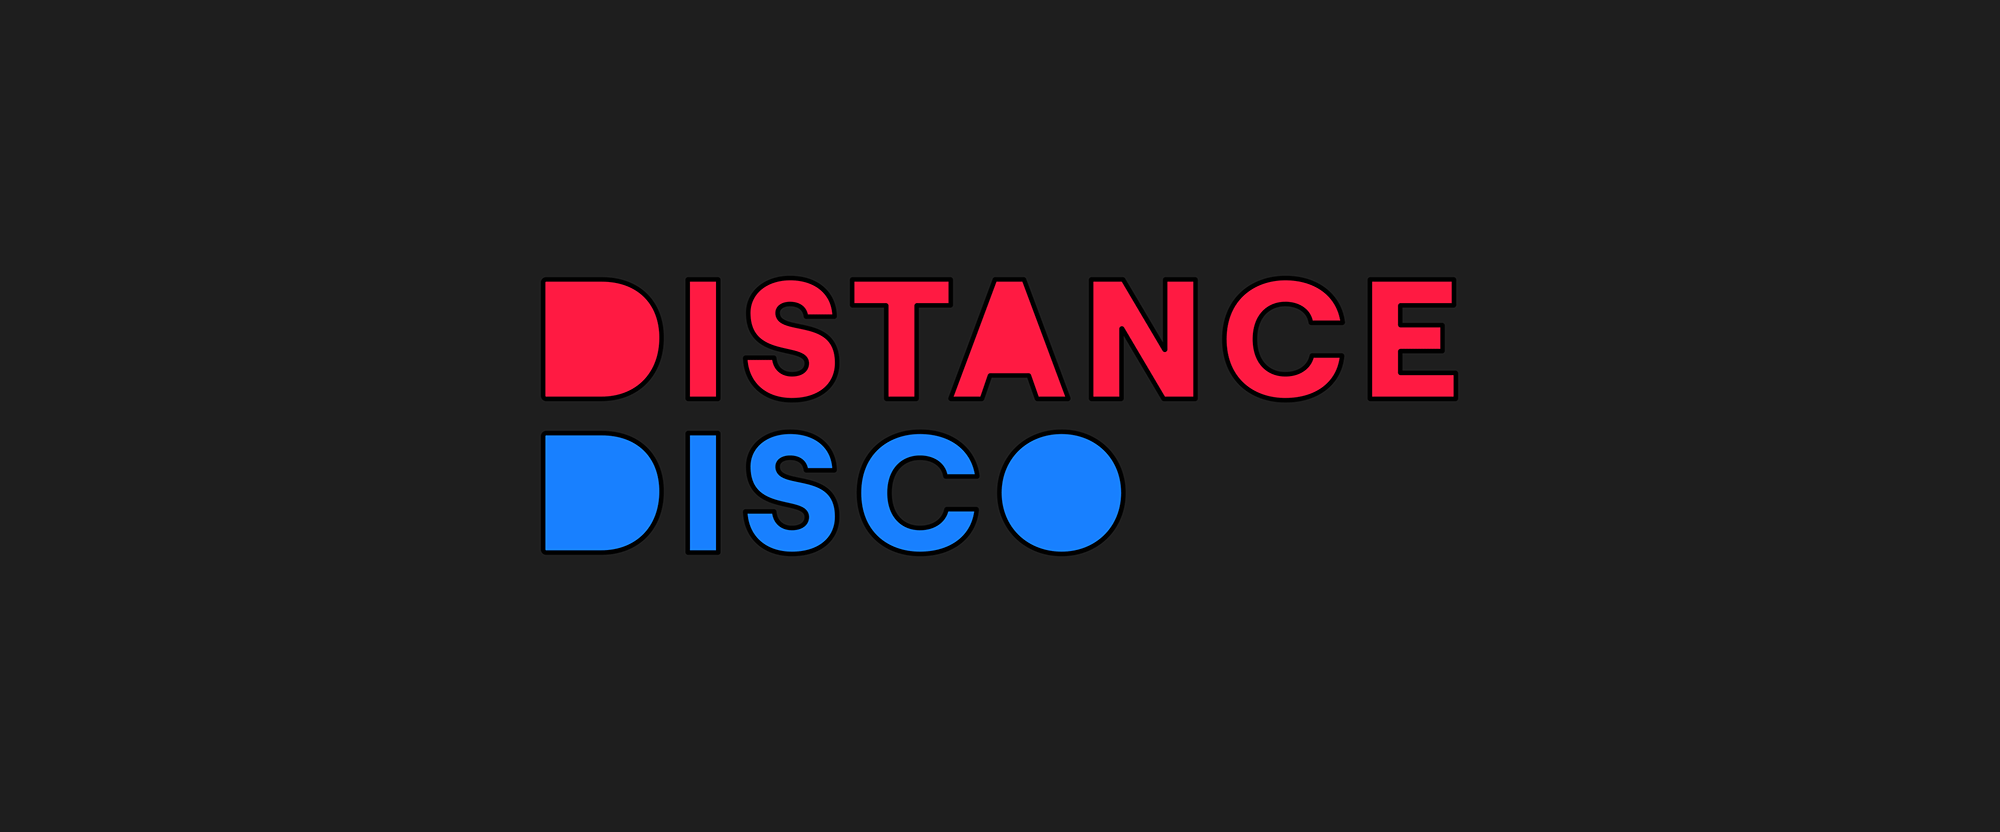 New Logo and Identity for Distance Disco by TIN